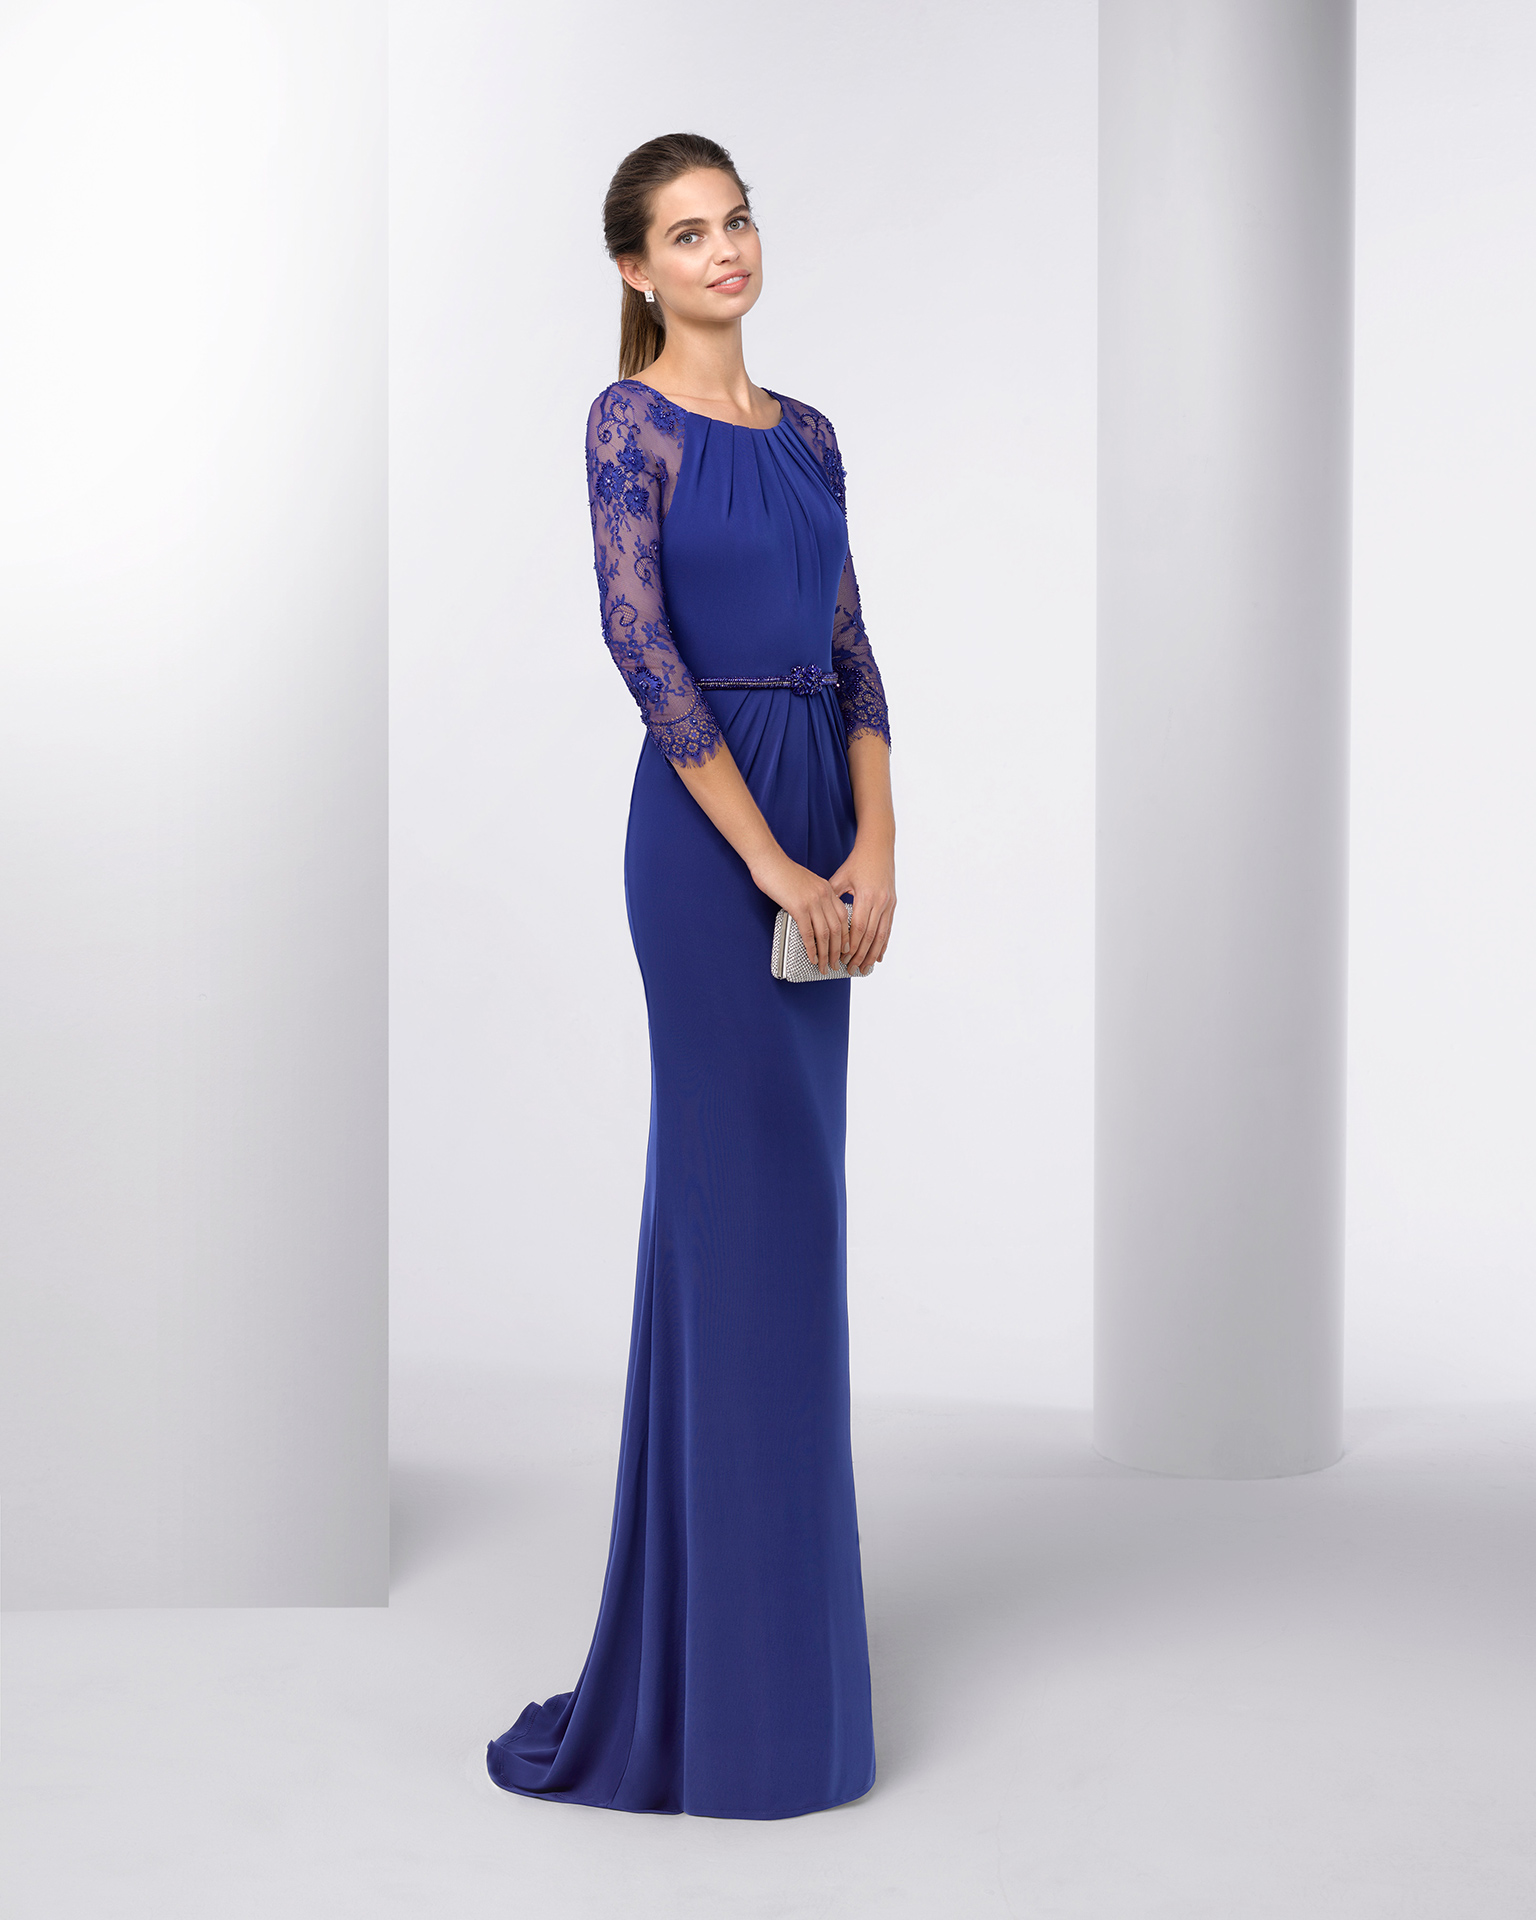 Stretch crepe cocktail dress with three-quarter lace sleeves, bateau neckline, beaded belt and lace back. Available in navy blue, cobalt, silver, red and green. 2018 FIESTA AIRE BARCELONA Collection.